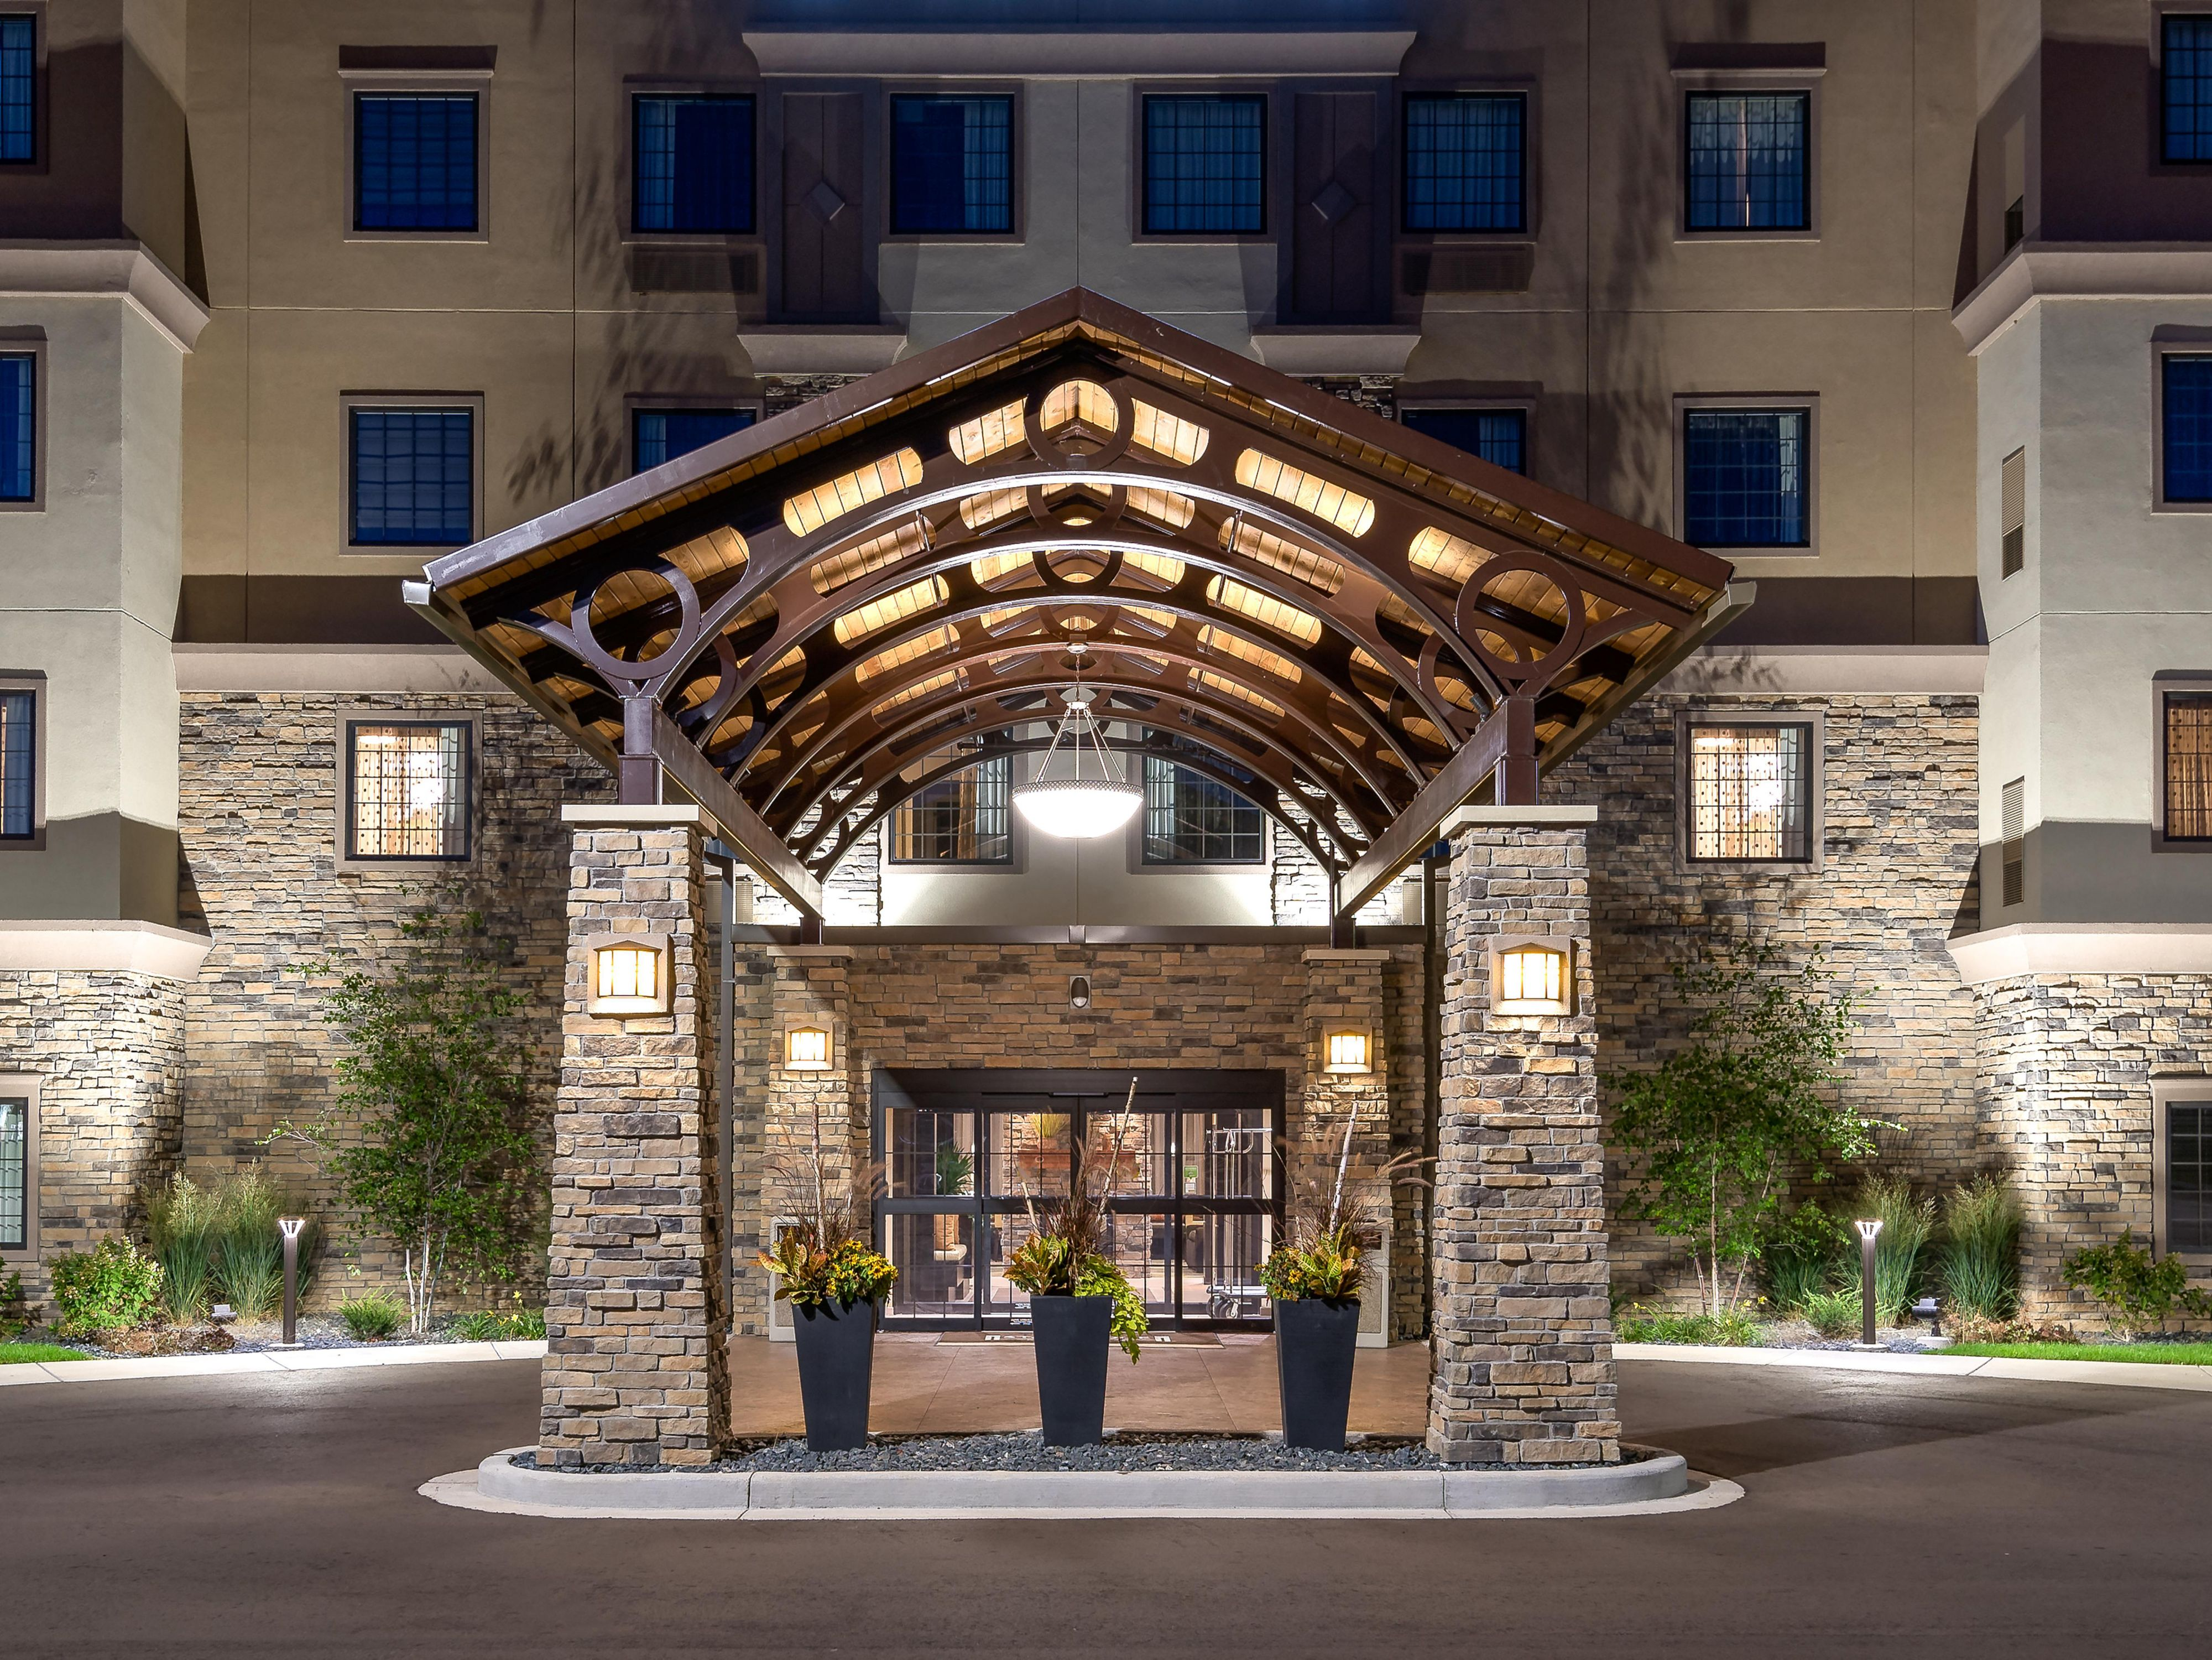 Staybridge Suites Eau Claire Altoona Extended Stay Hotel In Altoona United States With Full Kitchen